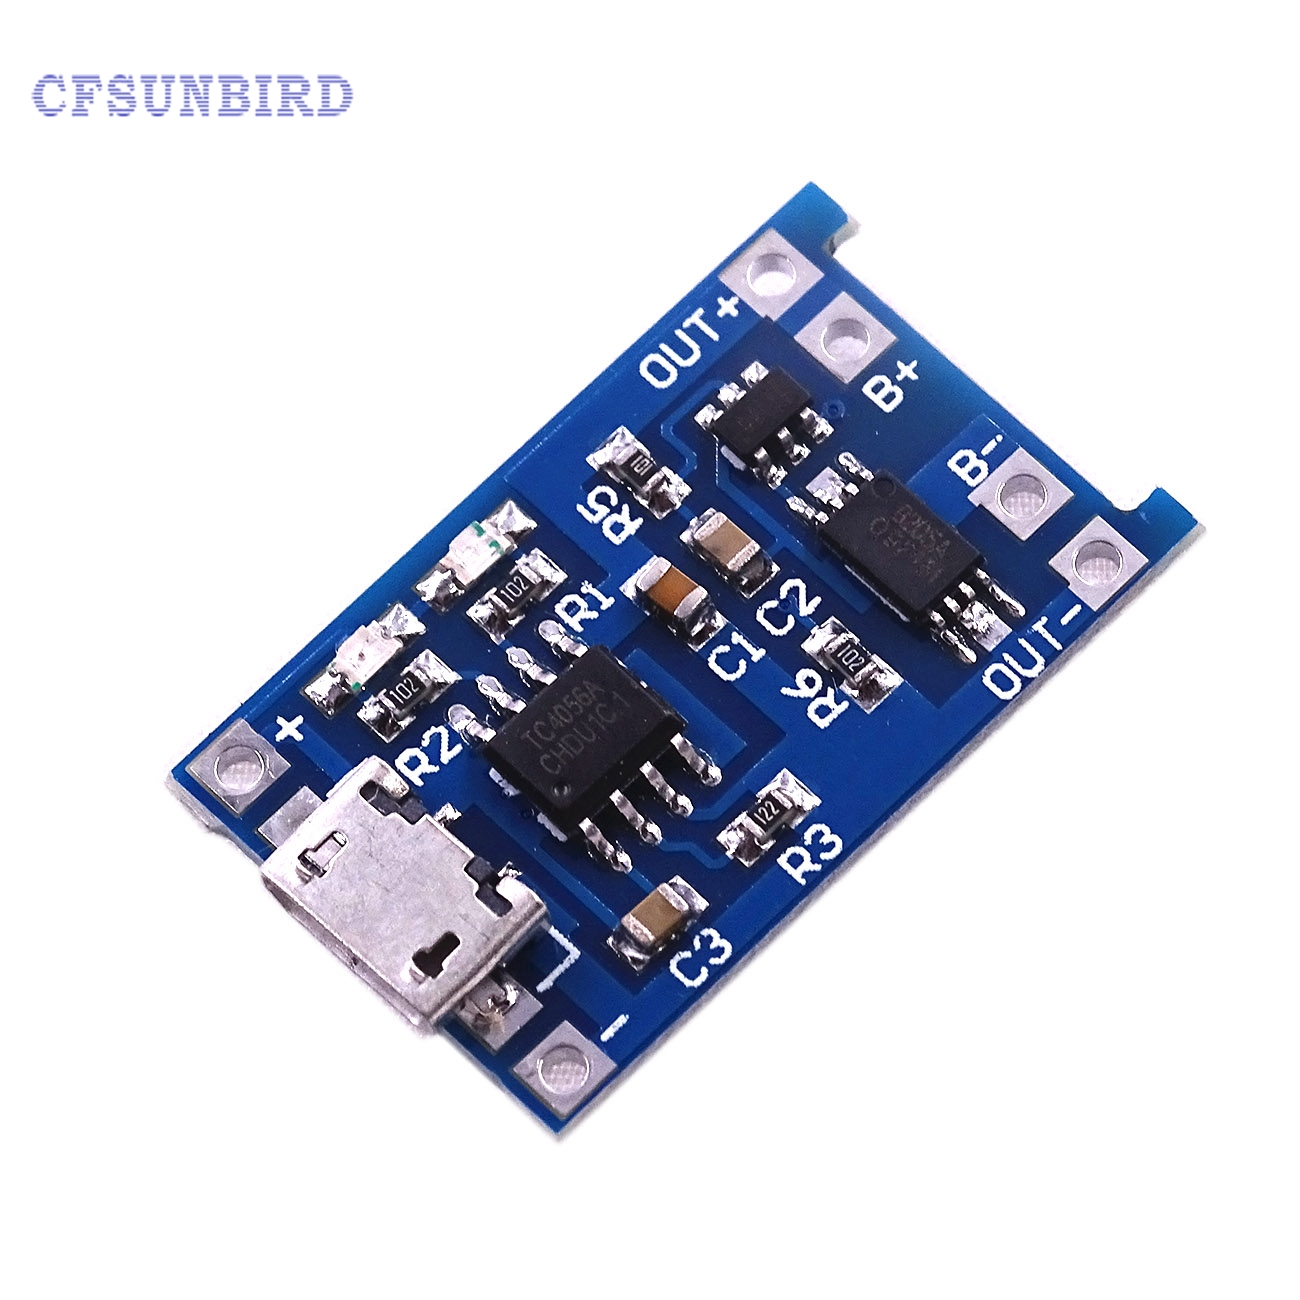 100pcs  Micro USB 5V 1A 18650 TP4056 Lithium Battery Charger Module Charging Board With Protection Dual Functions 4pcs micro usb 5v 1a 18650 tp4056 lithium battery charger module lipo charging board with dual functions automatic protection